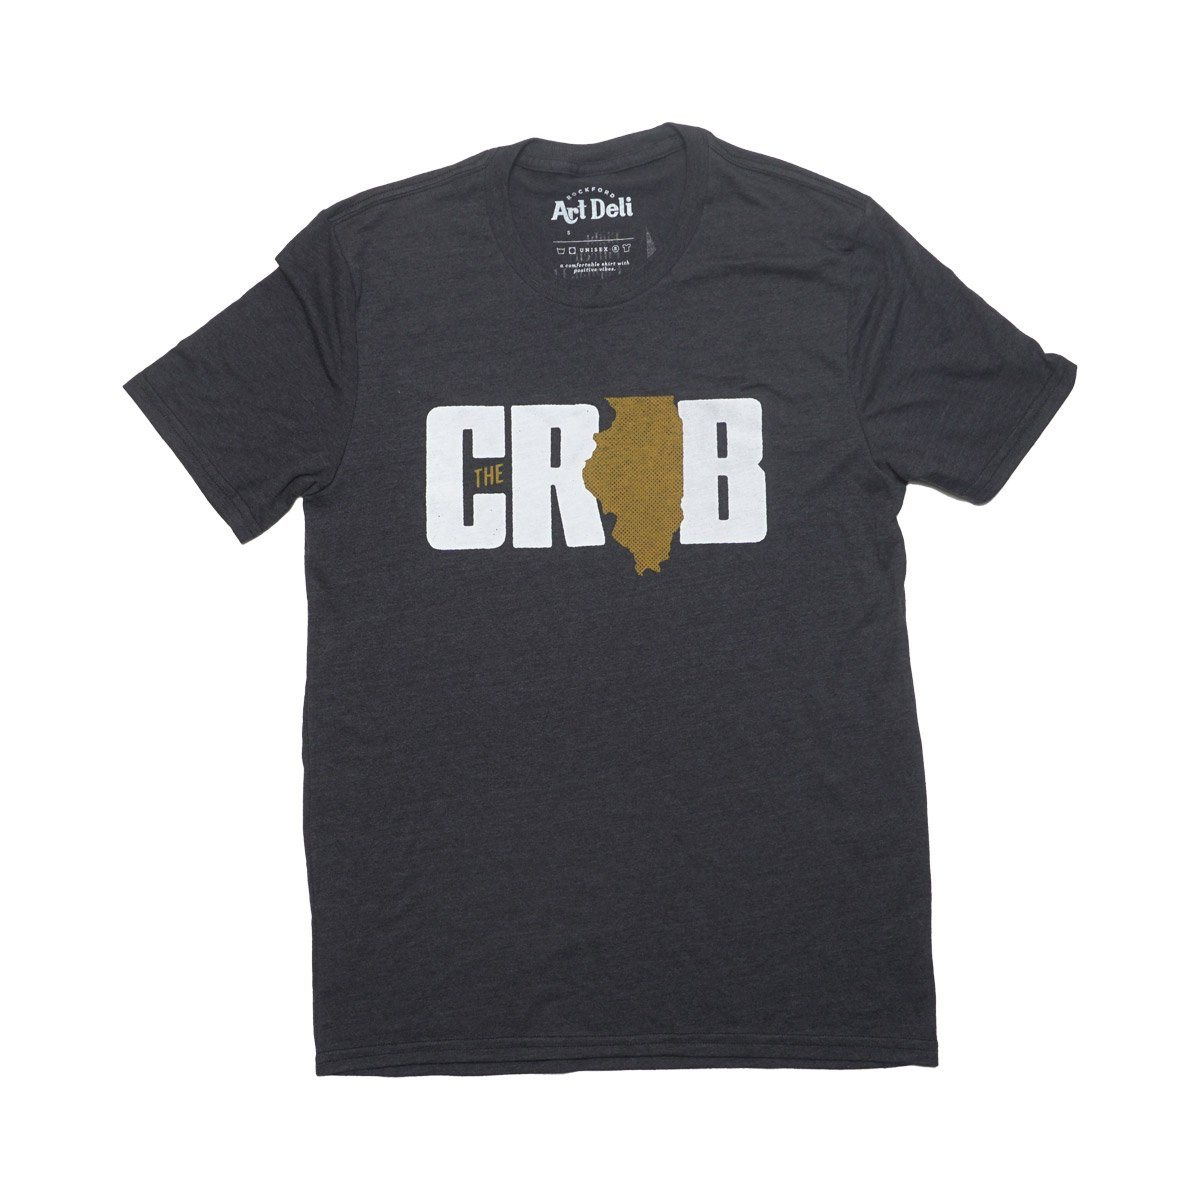 815 Capital - The Crib T-shirt Allmade